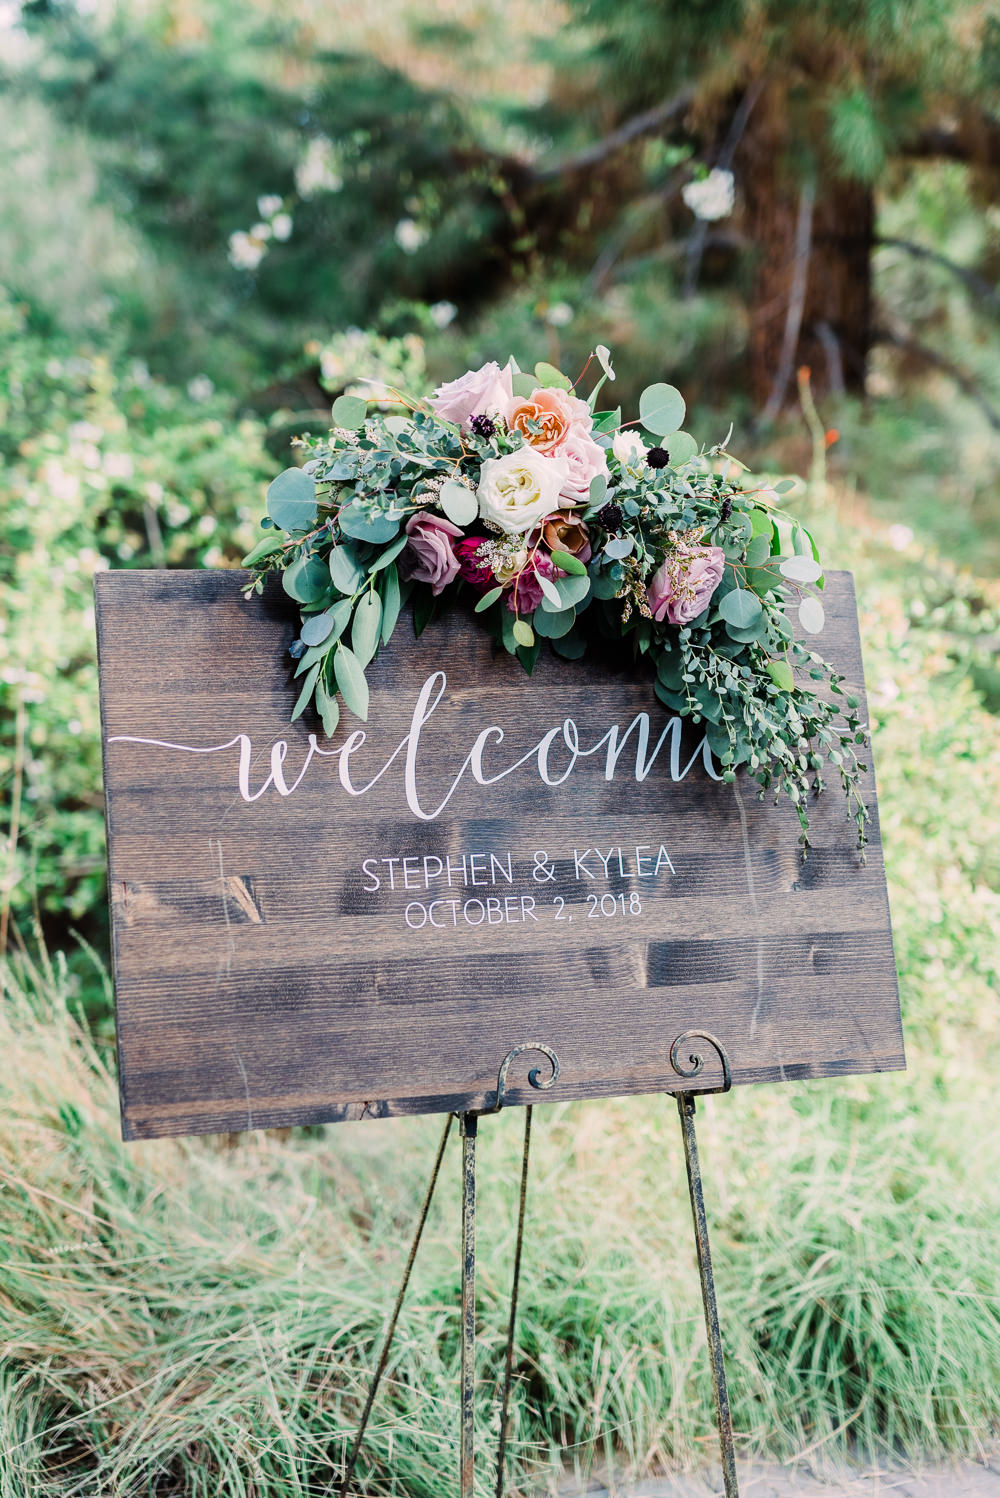 Wooden Welcome Sign Flowers Calligraphy Easel Romantic Soft Elopement Wedding Las Vegas Kristen Joy Photography